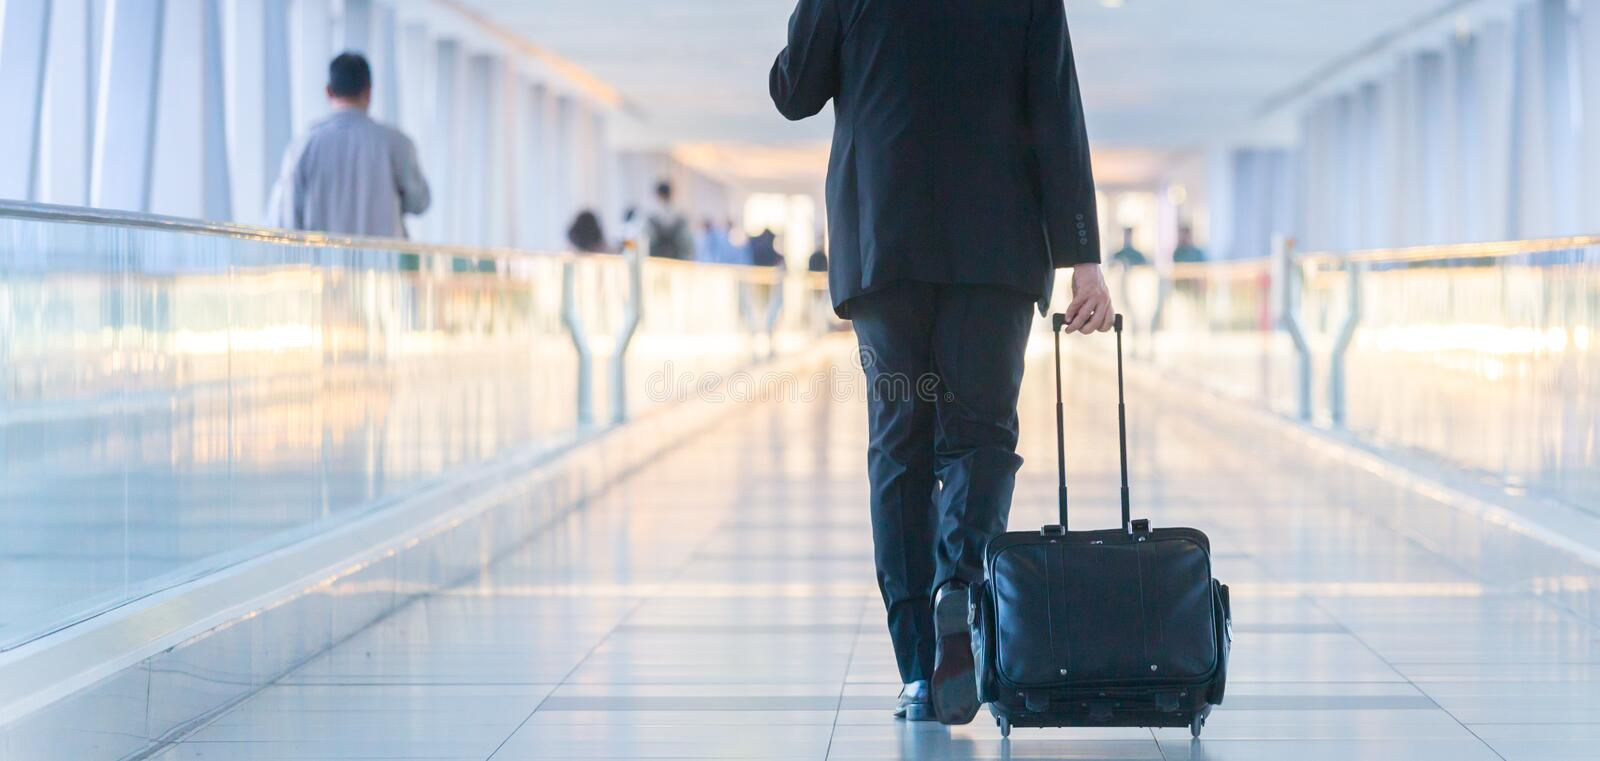 Businessman walking and wheeling a trolley suitcase at the lobby, talking on a mobile phone. Business travel concept. royalty free stock photography